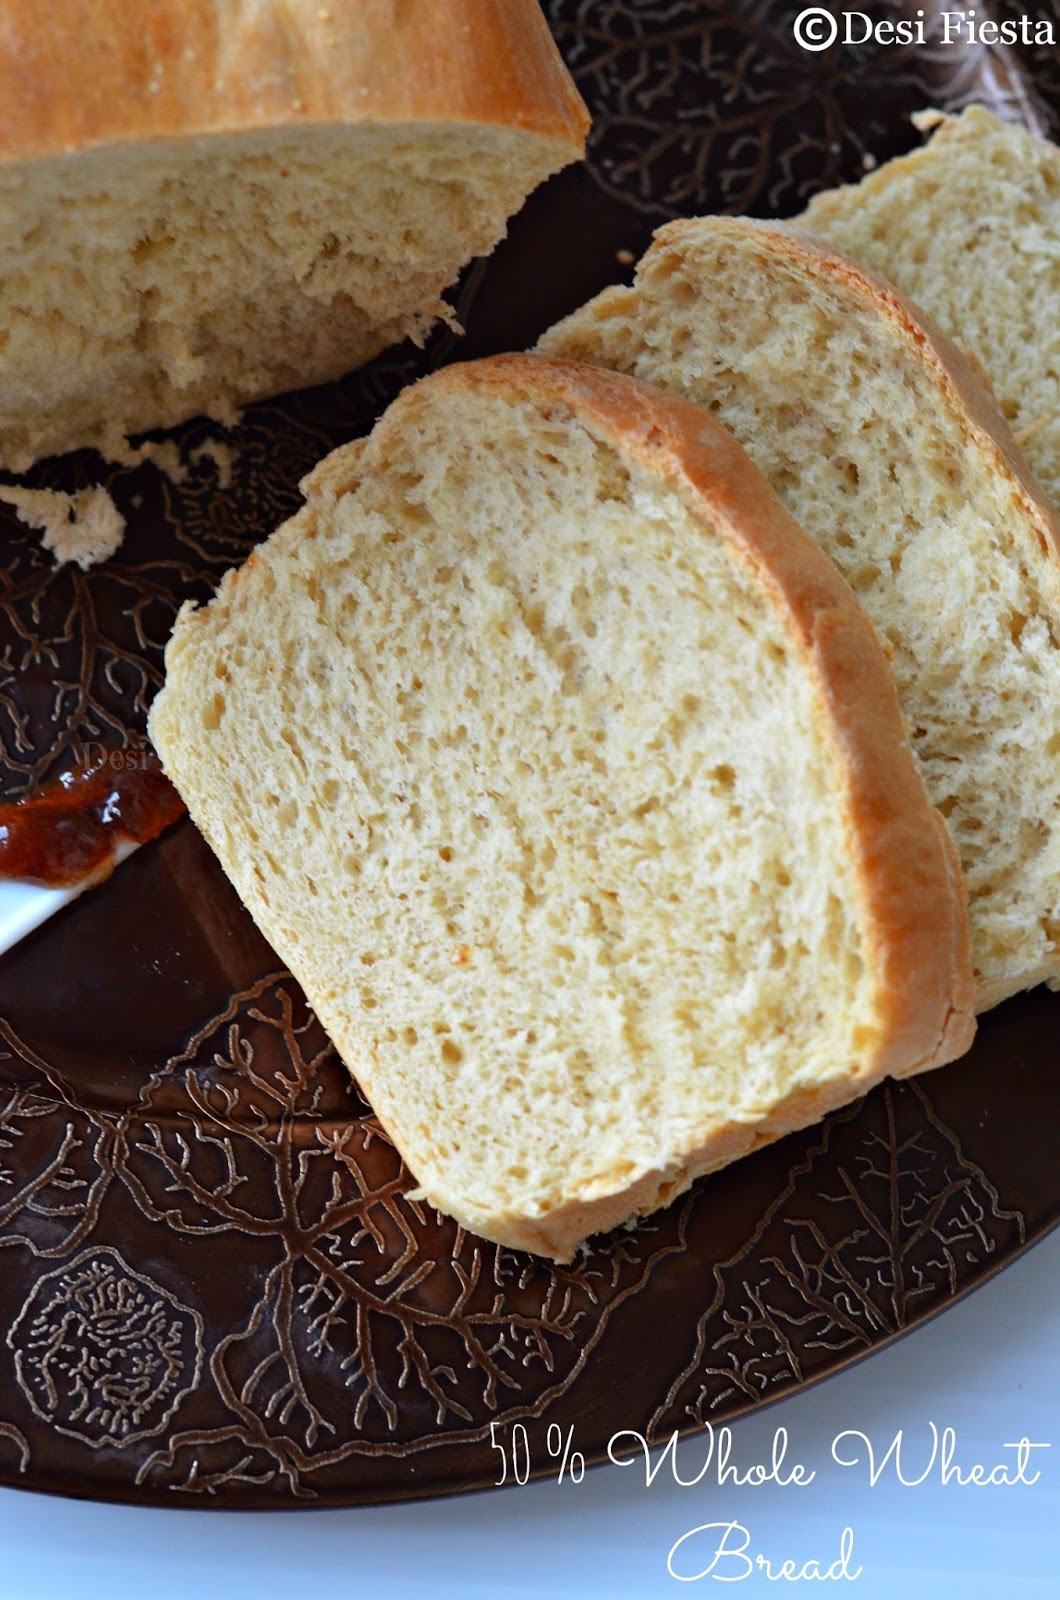 50 % Wheat Flour Bread